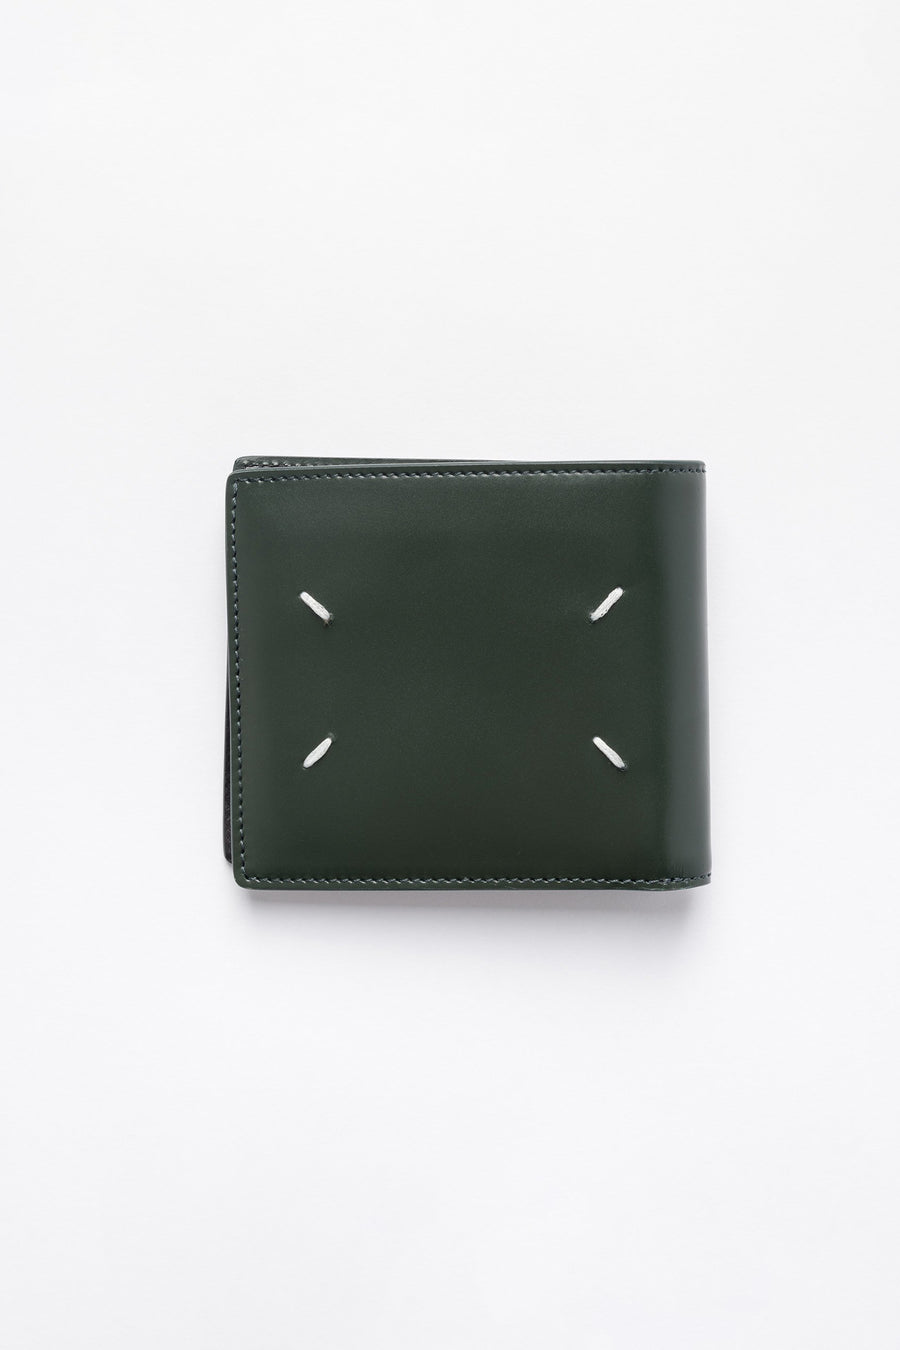 Maison Margiela Leather Folding Wallet in Dark Green - Notre